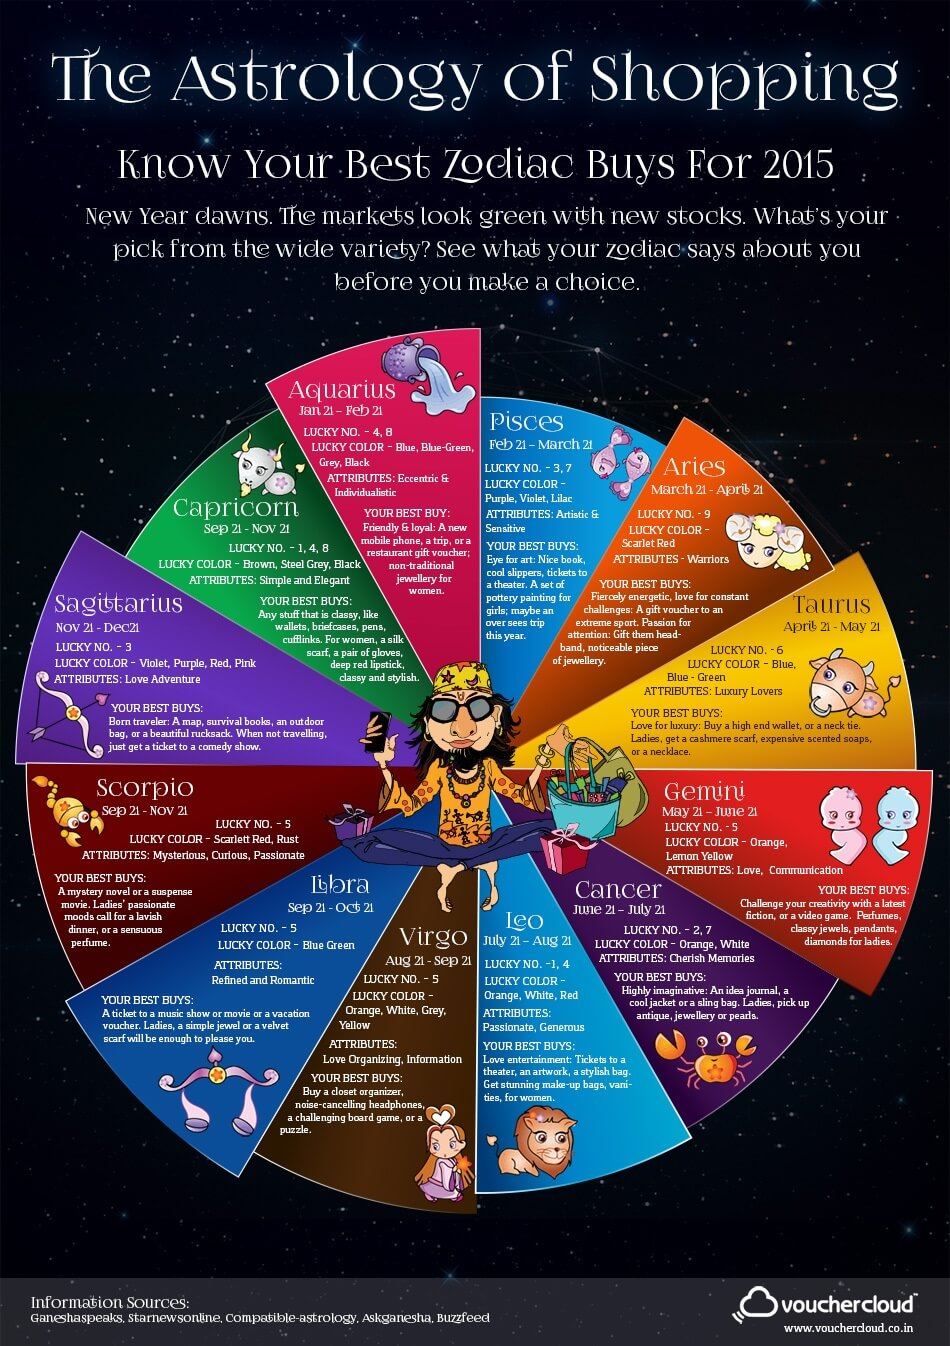 Zodiac Sign Shopping Guide for 2015 – Vouchercloud India